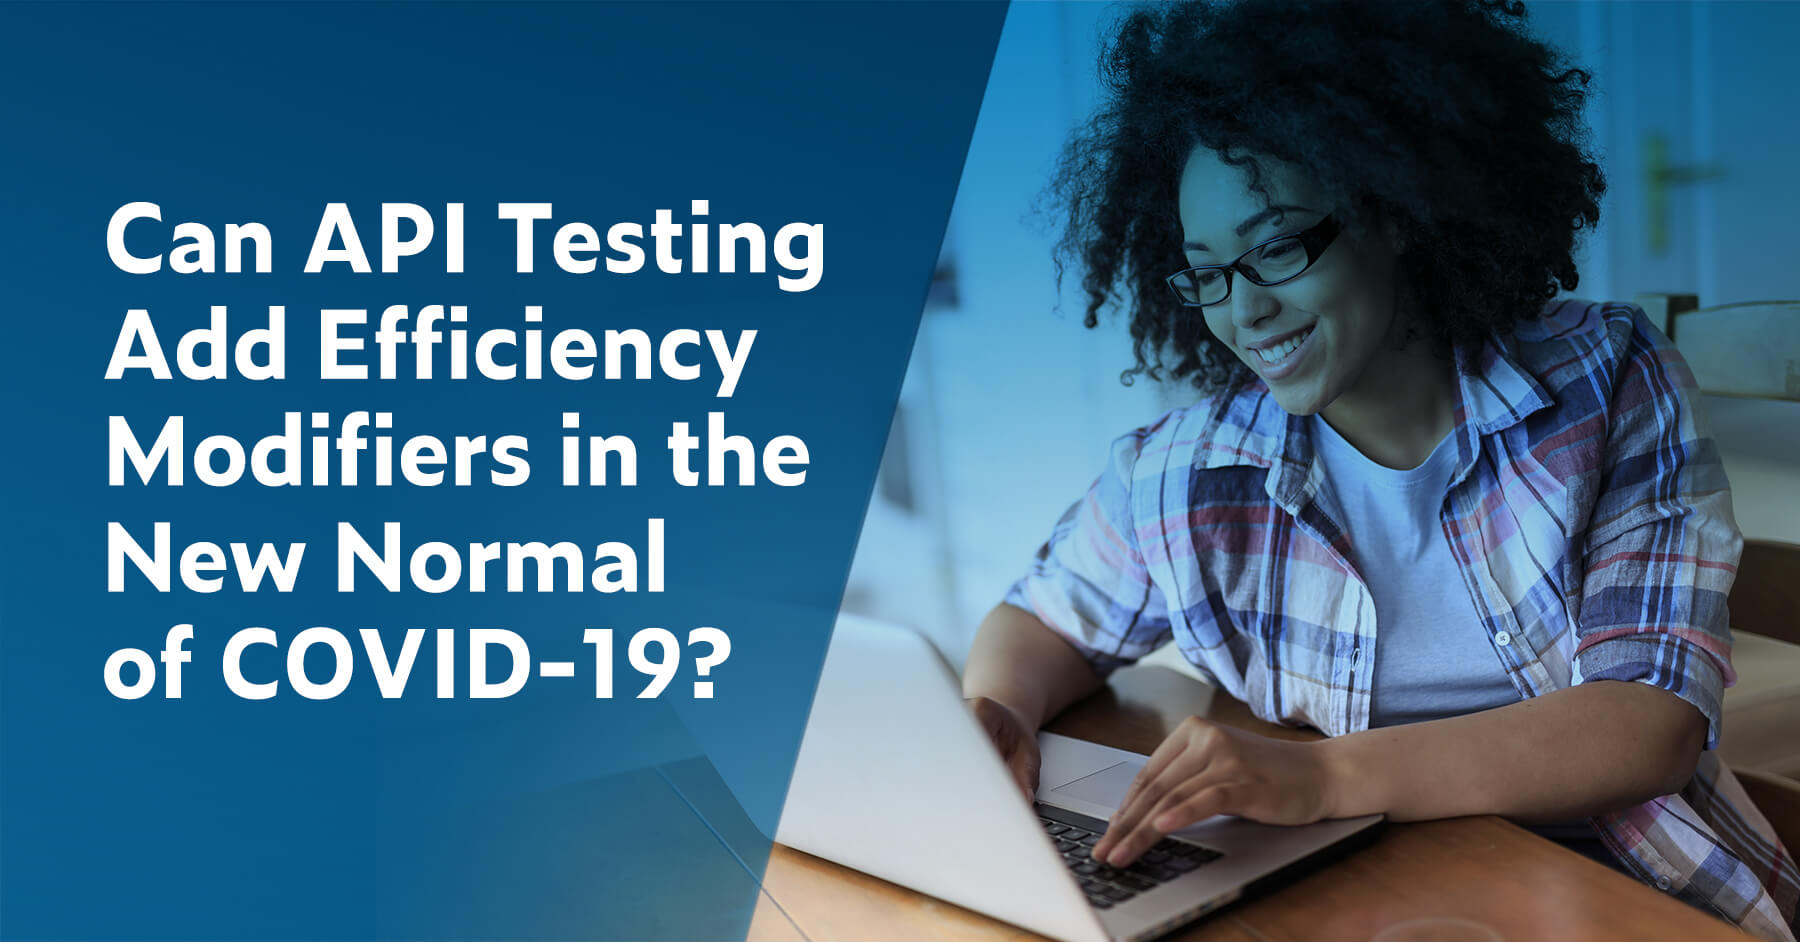 Can API Testing Add Efficiency Modifiers in the New Normal of COVID-19?